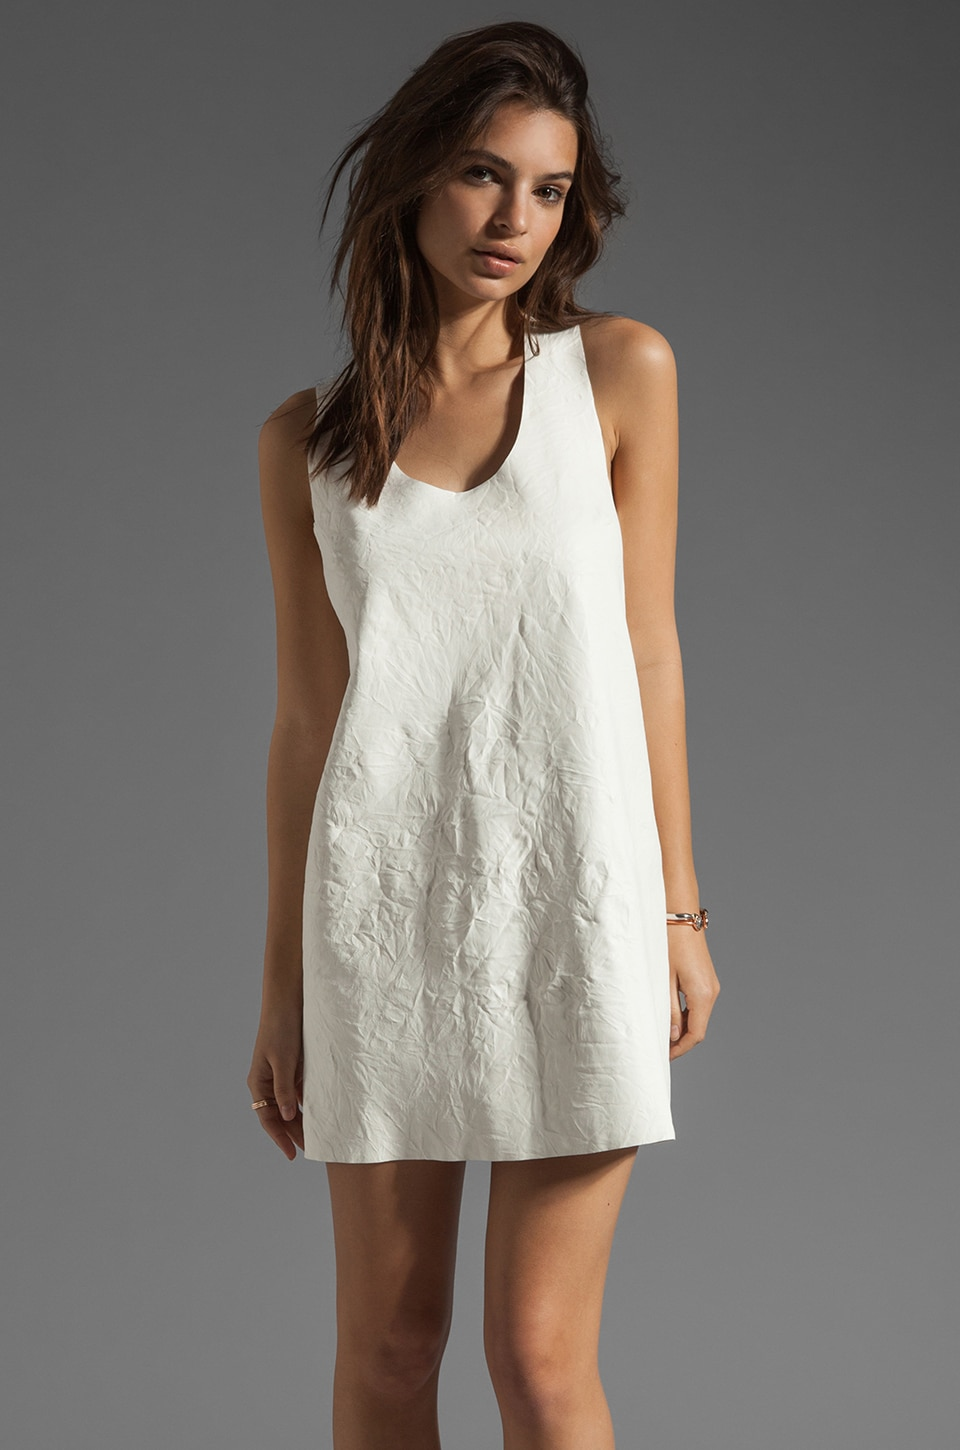 AGAIN Afterword Racer Back Lambskin Leather Dress in Crinkle White